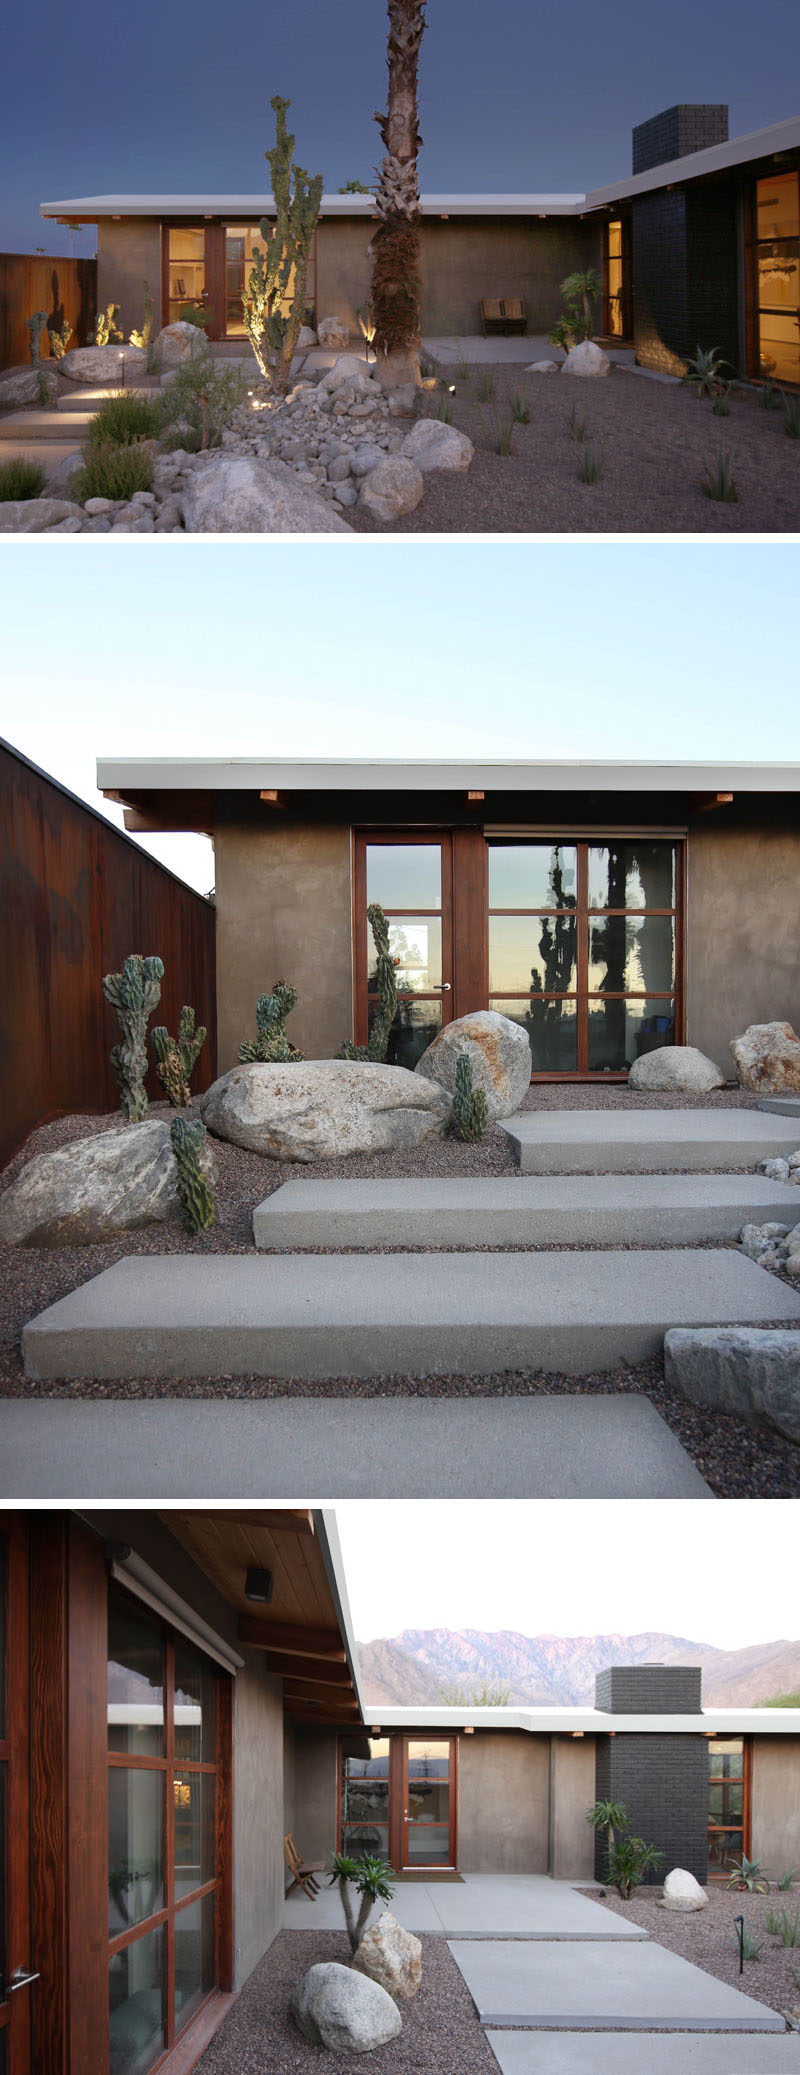 A modern courtyard with desert landscaping and steps leads up to the front door of this renovated mid-century house. #landscaping #garden #courtyard #desertgarden